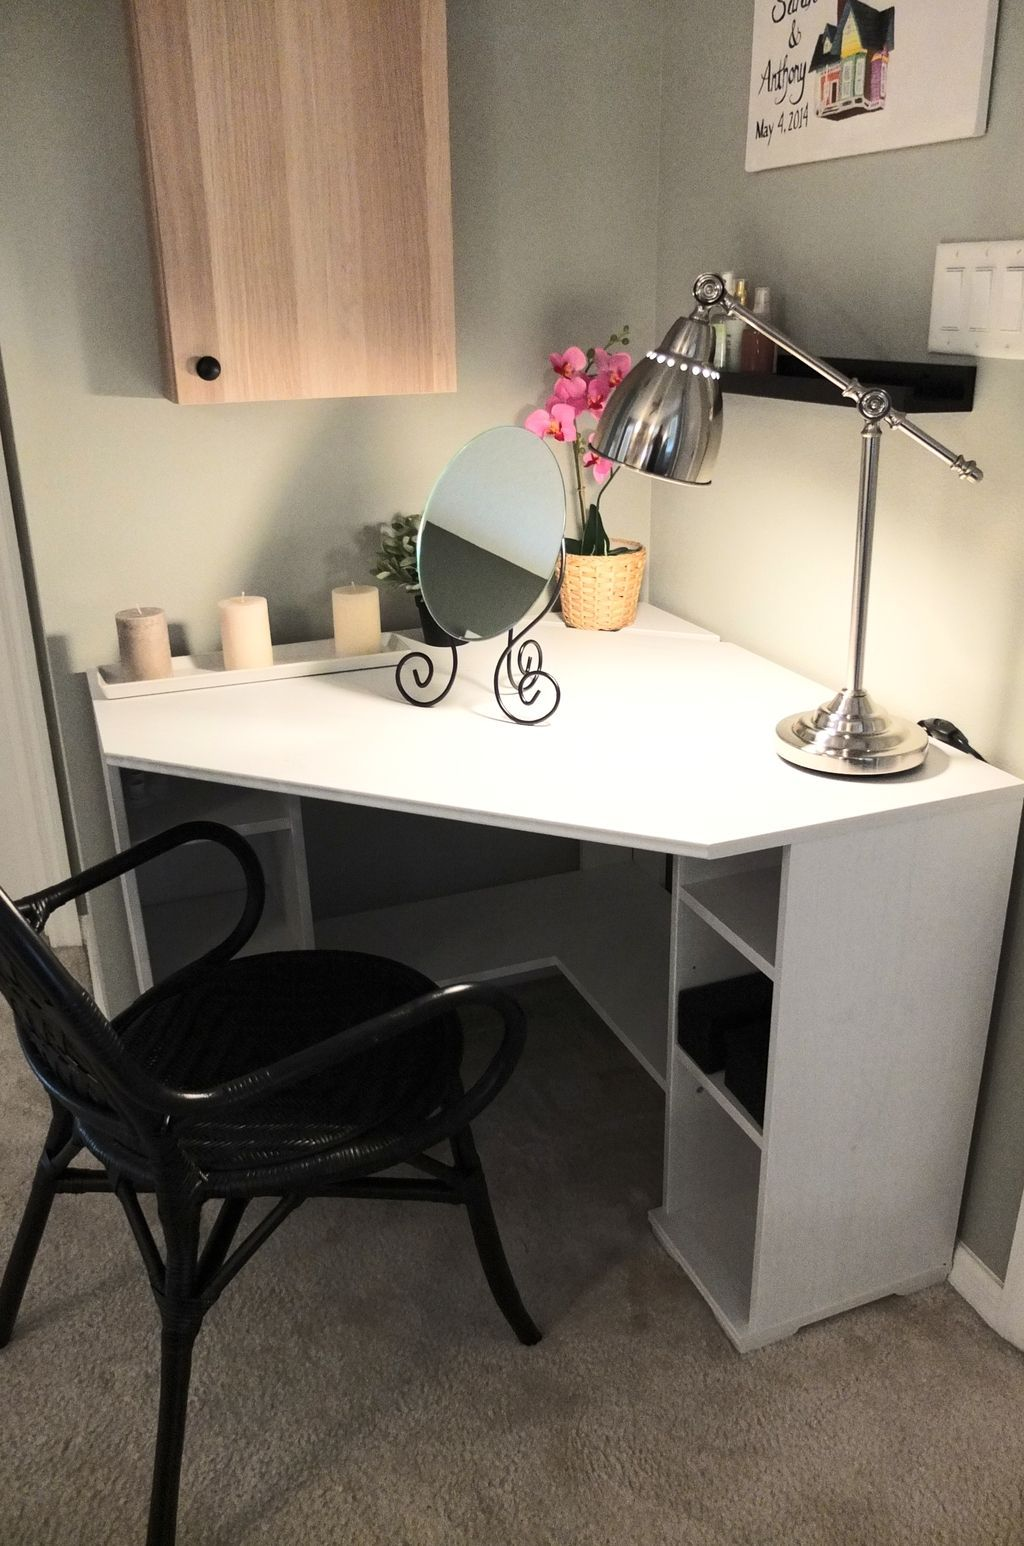 Corner Desk Decorating Ideas Homeofficecornerdeskideas Diy Corner Desk Bedroom Desk Small Corner Desk